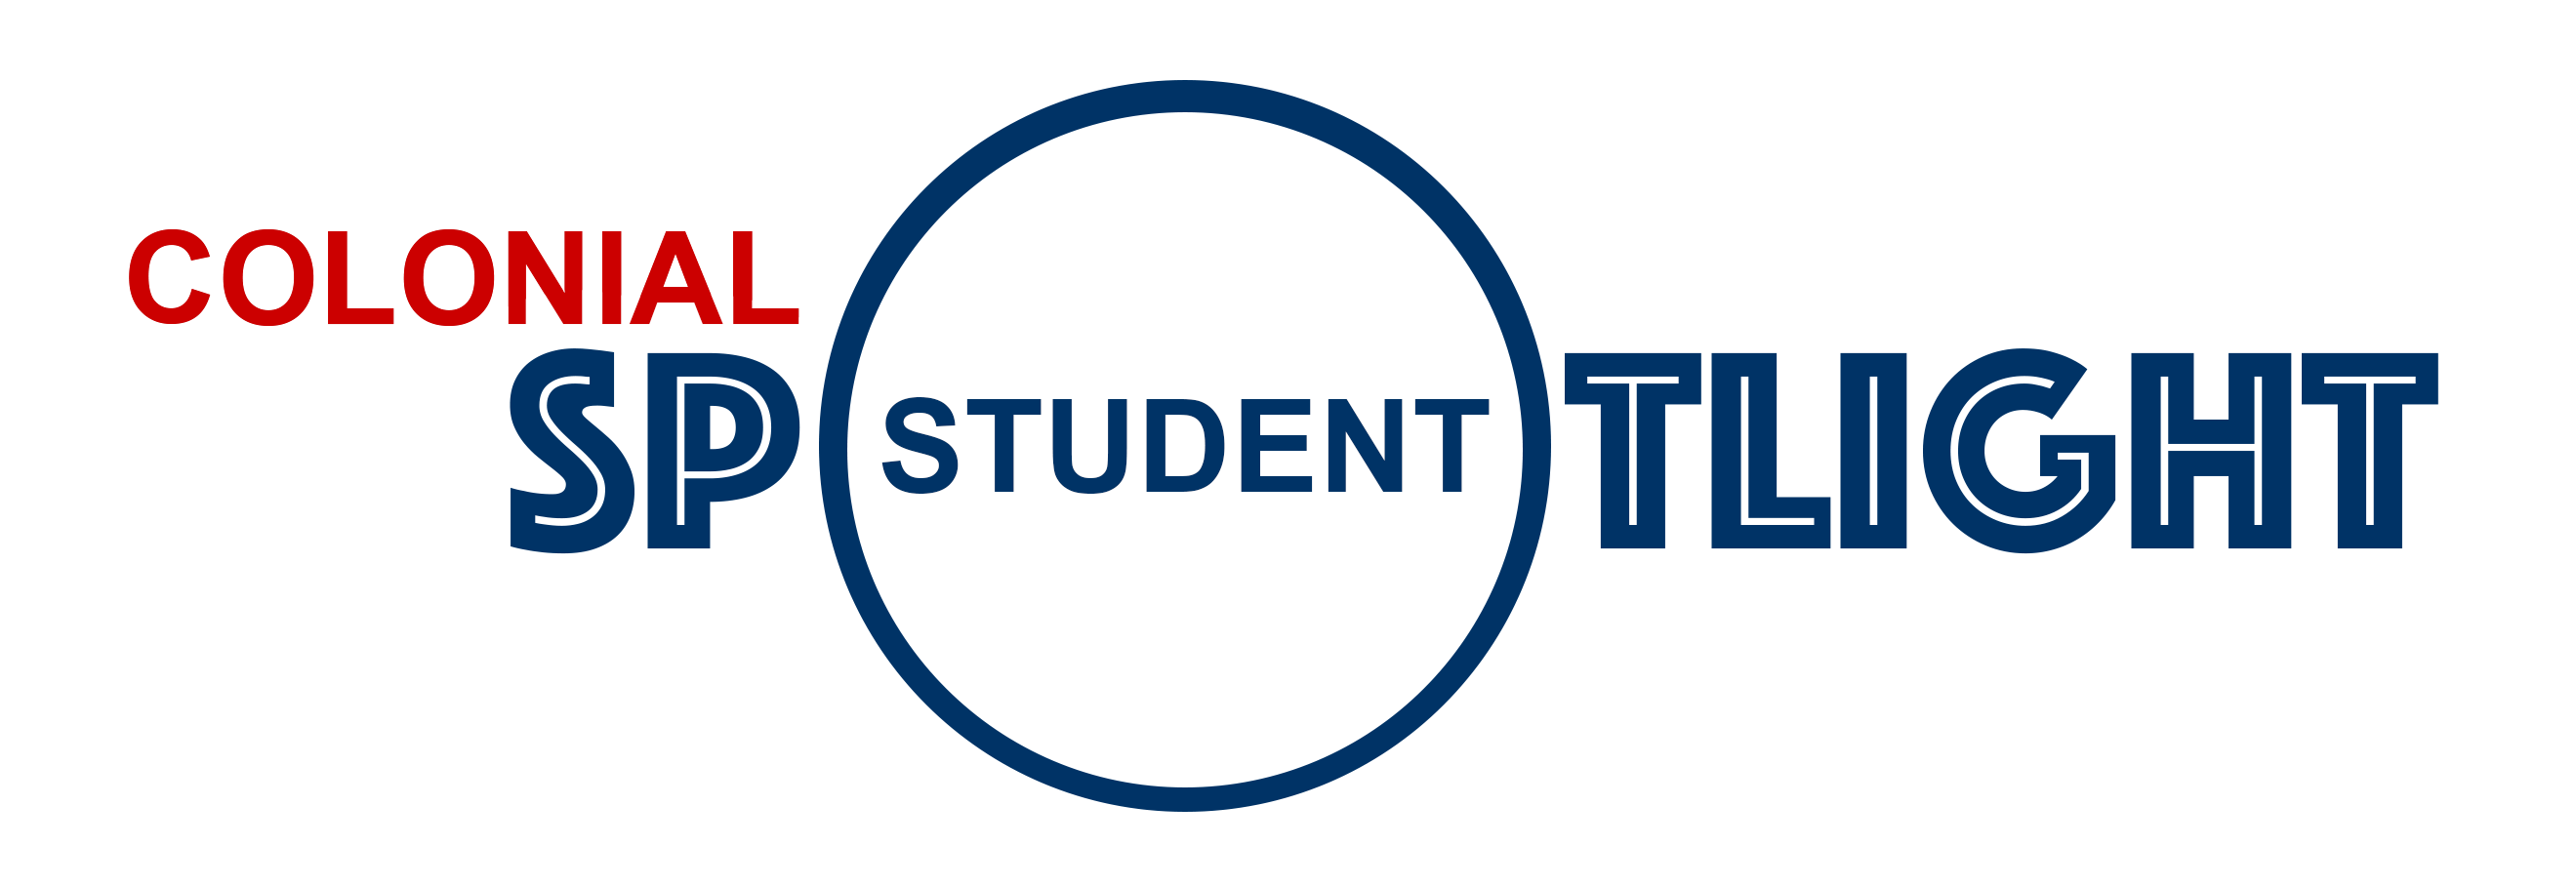 Colonial Student Spotlight logo made of text